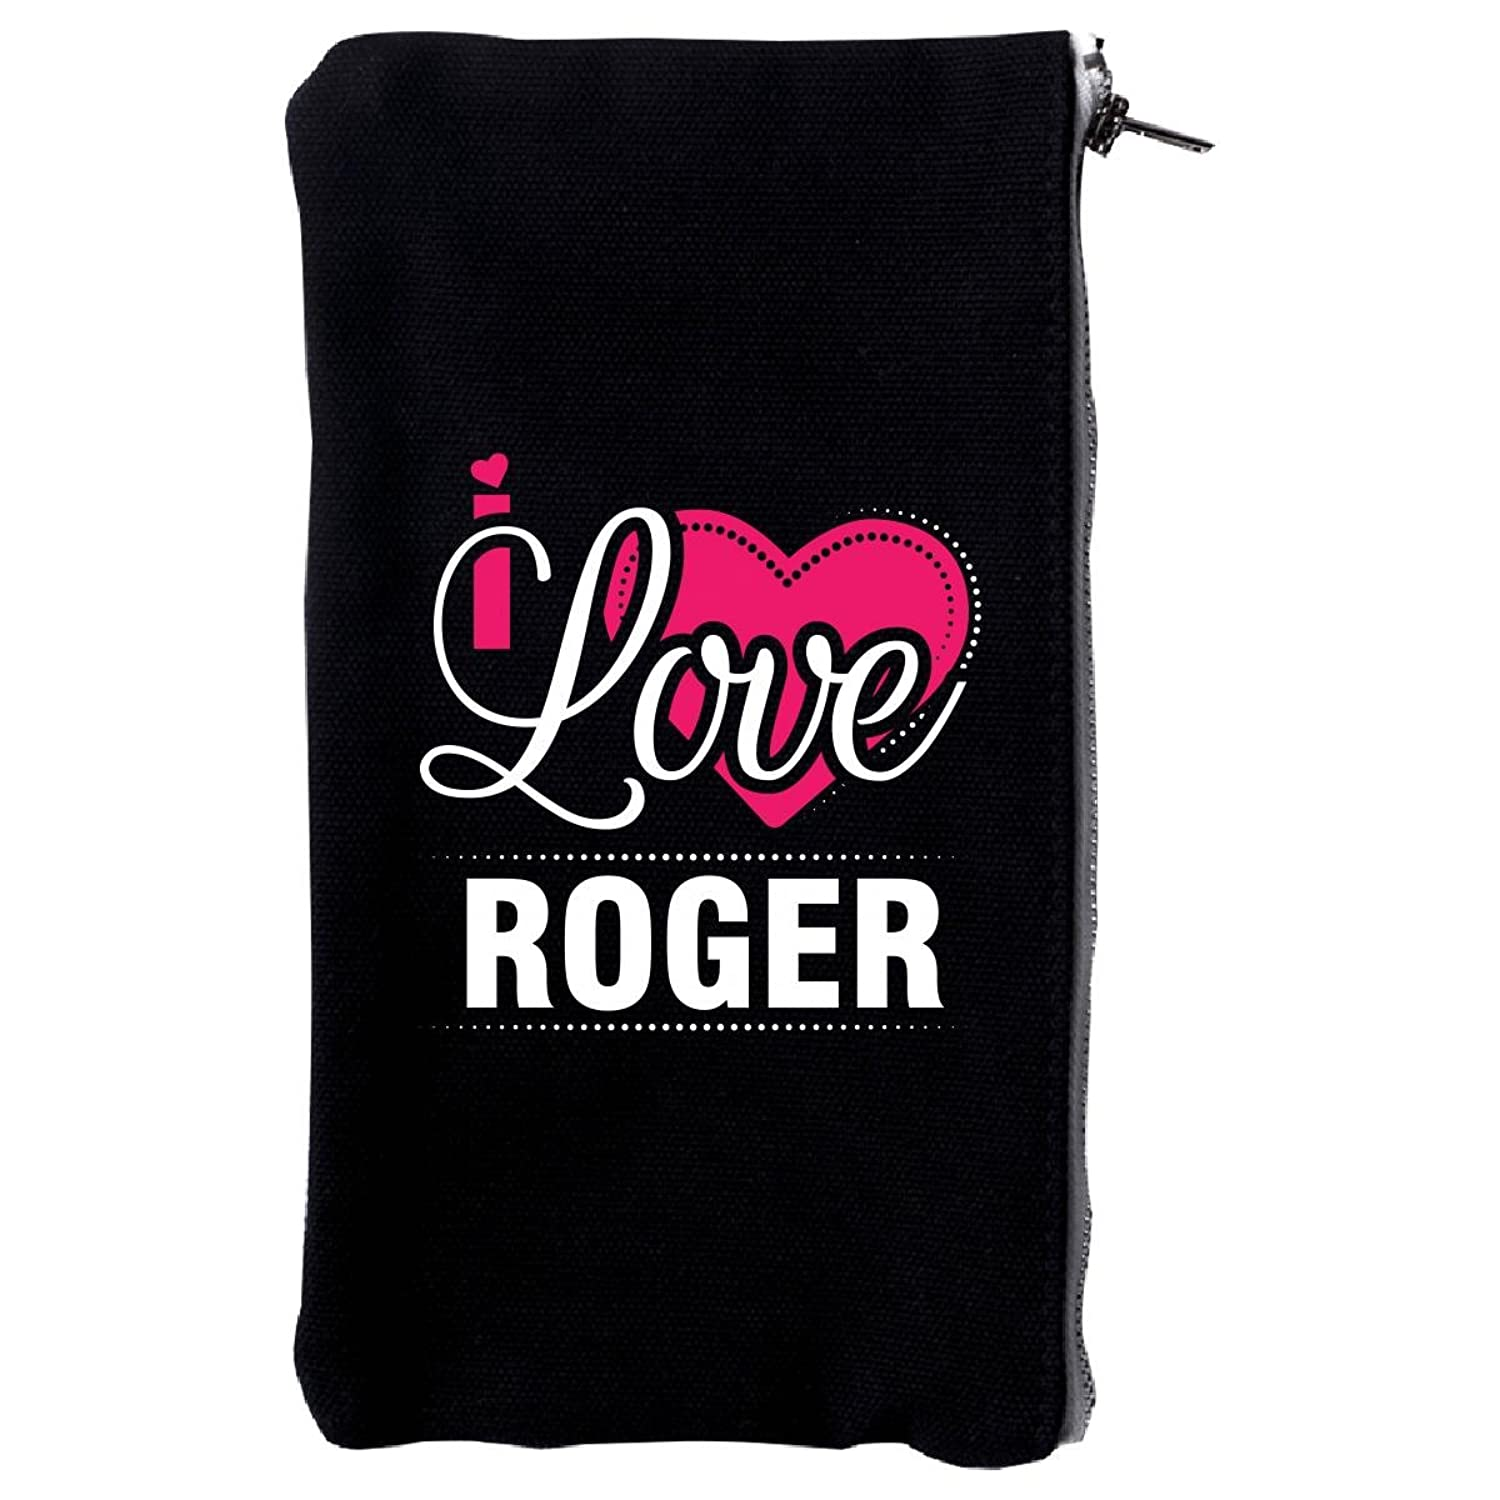 I Love Roger - Cool Gift For Roger From Girlfriend - Make Up Case